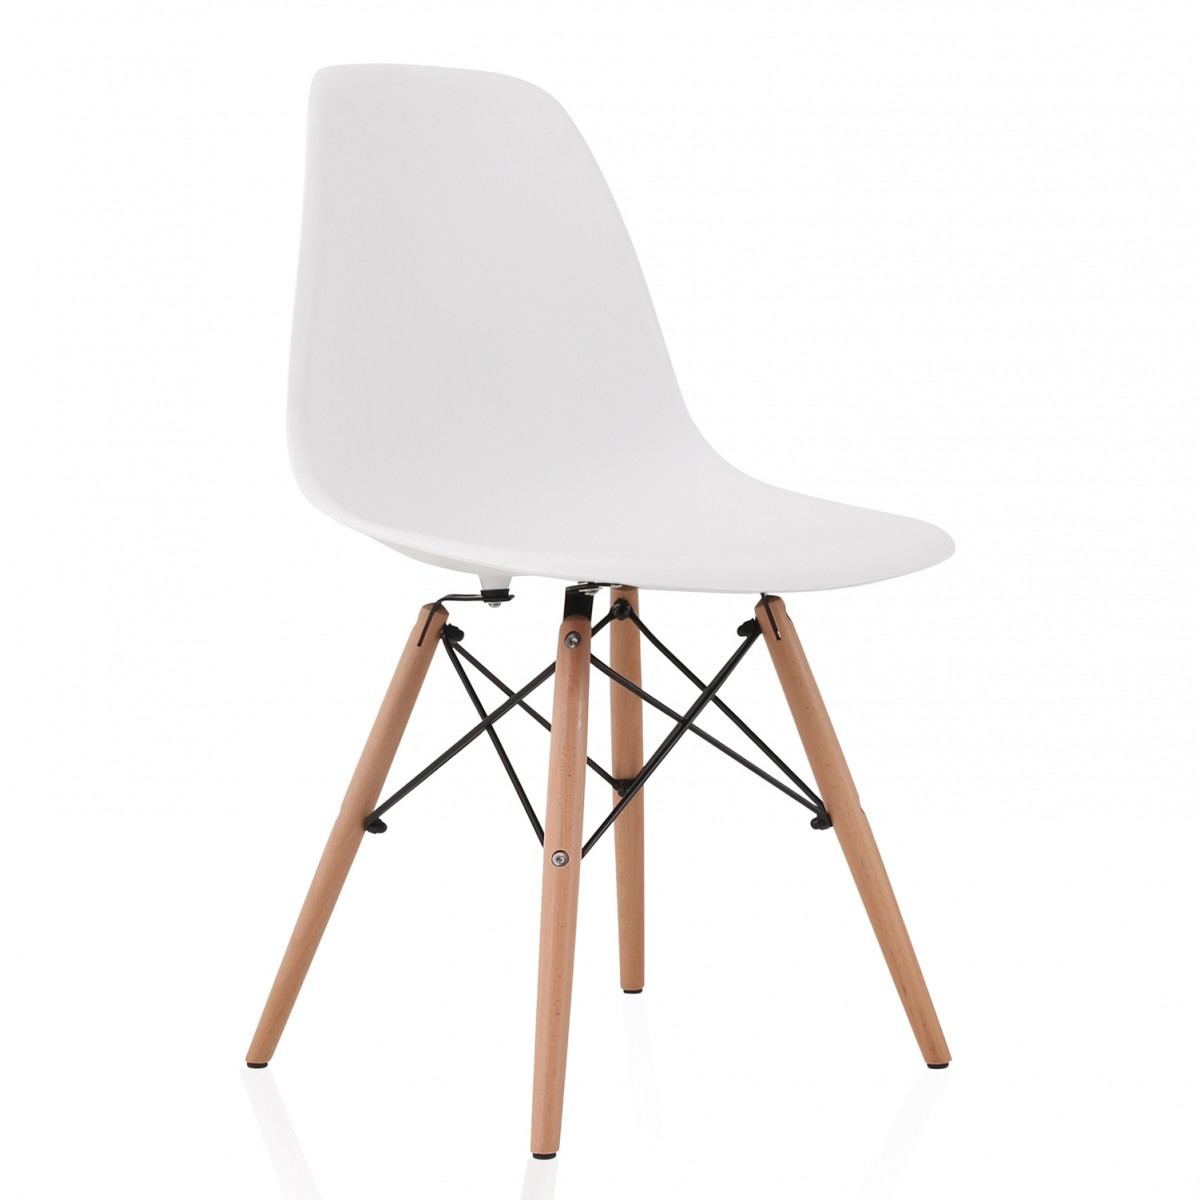 eiffel dining chair with beech legs under laptop stand eames style dsw molded white plastic shell